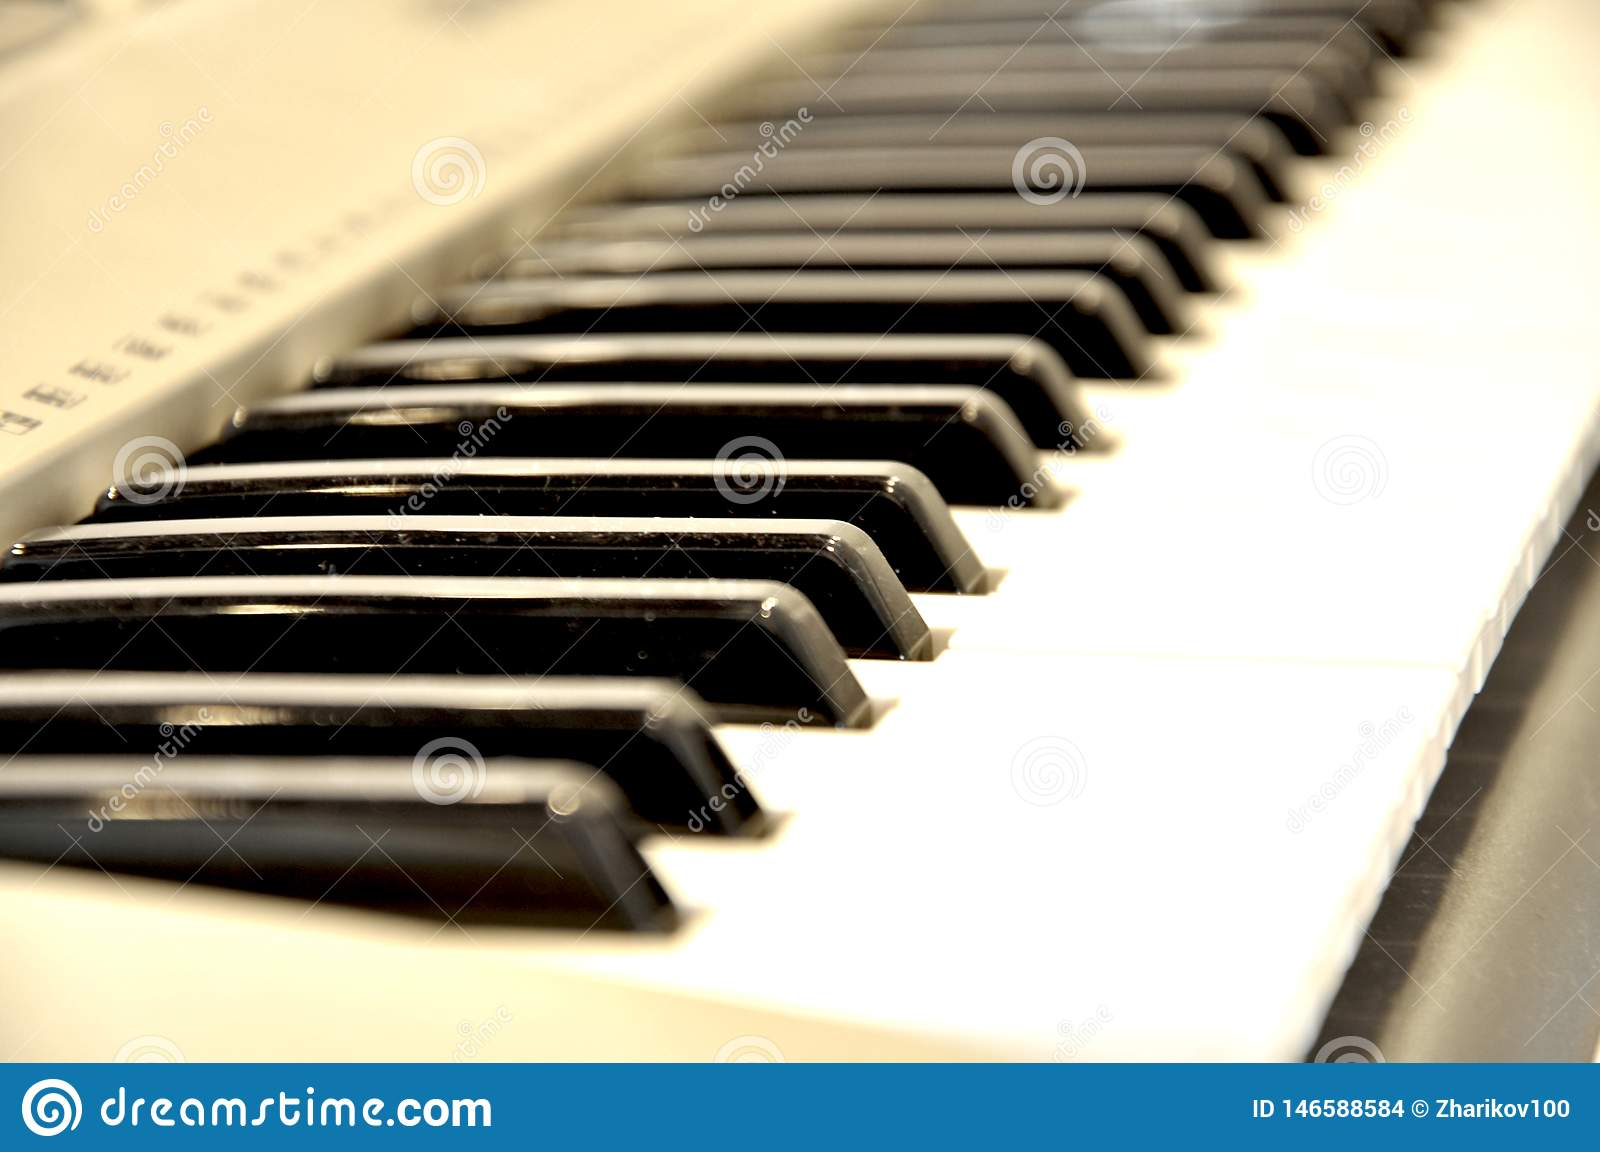 White and black synth keys